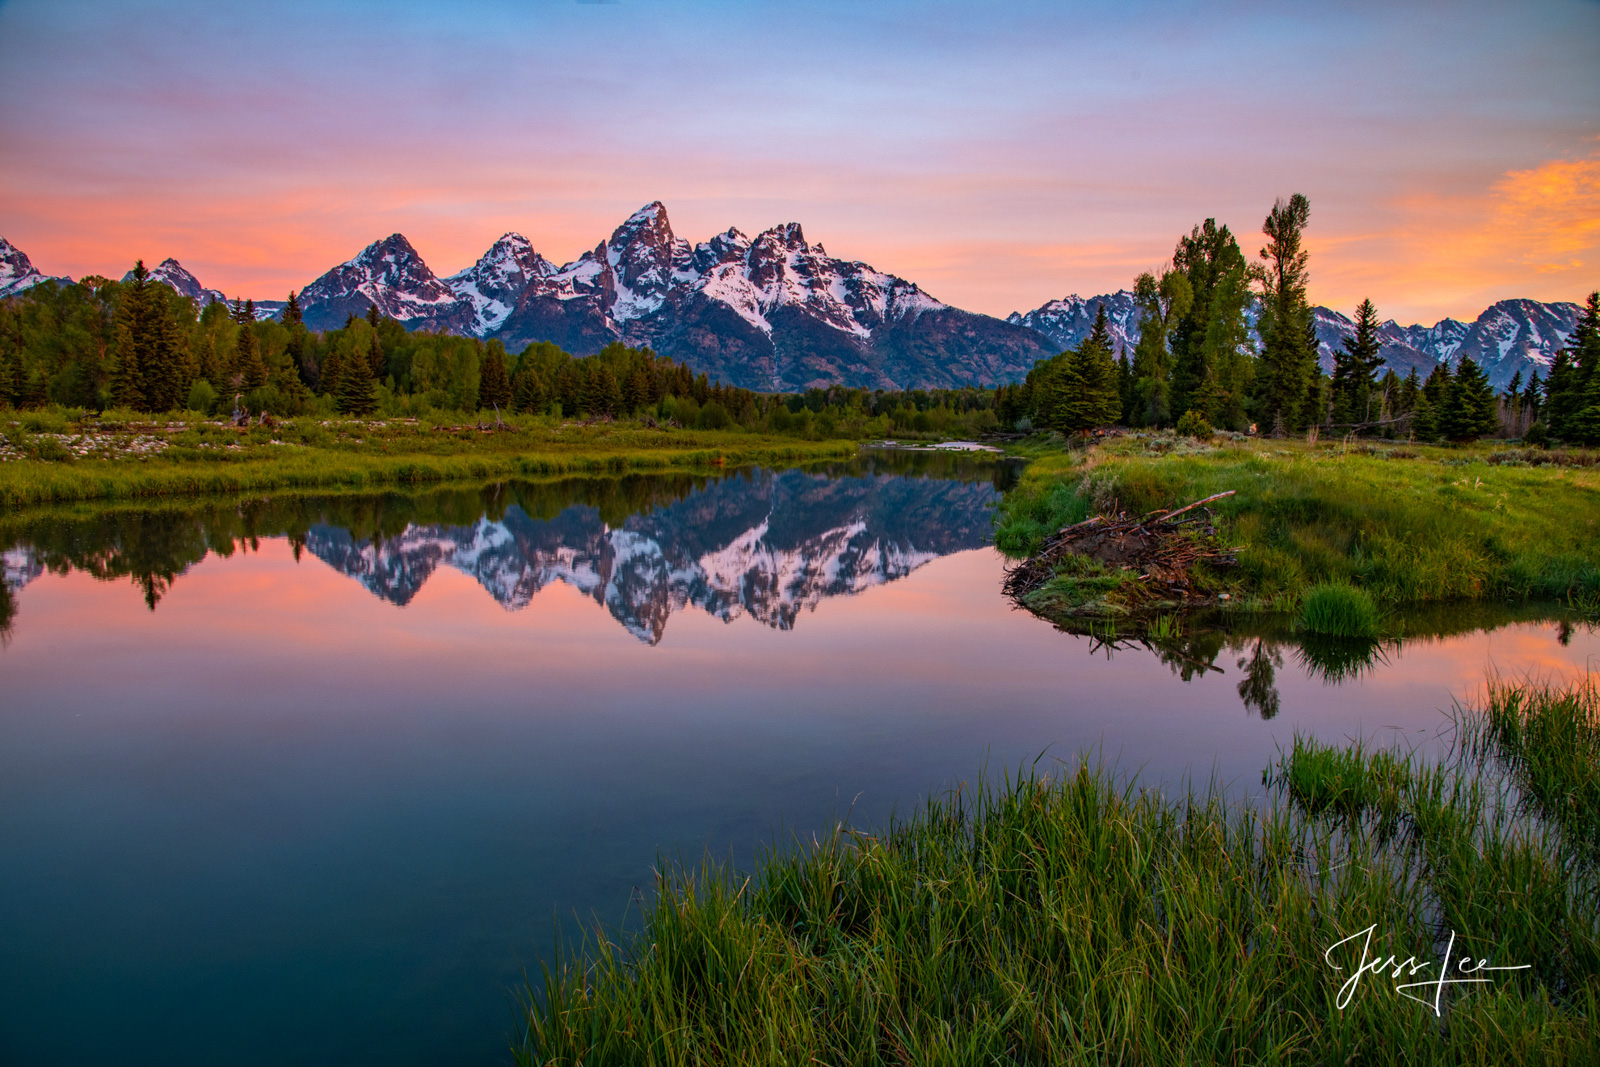 photo of Grand Tetons in Wyoming, Jackson Hole, mountain photography, alpenglow, national park, landscape photos, mountain range, forest, evergreens, sunset, lake, river, Snake River, fine art, photog, photo